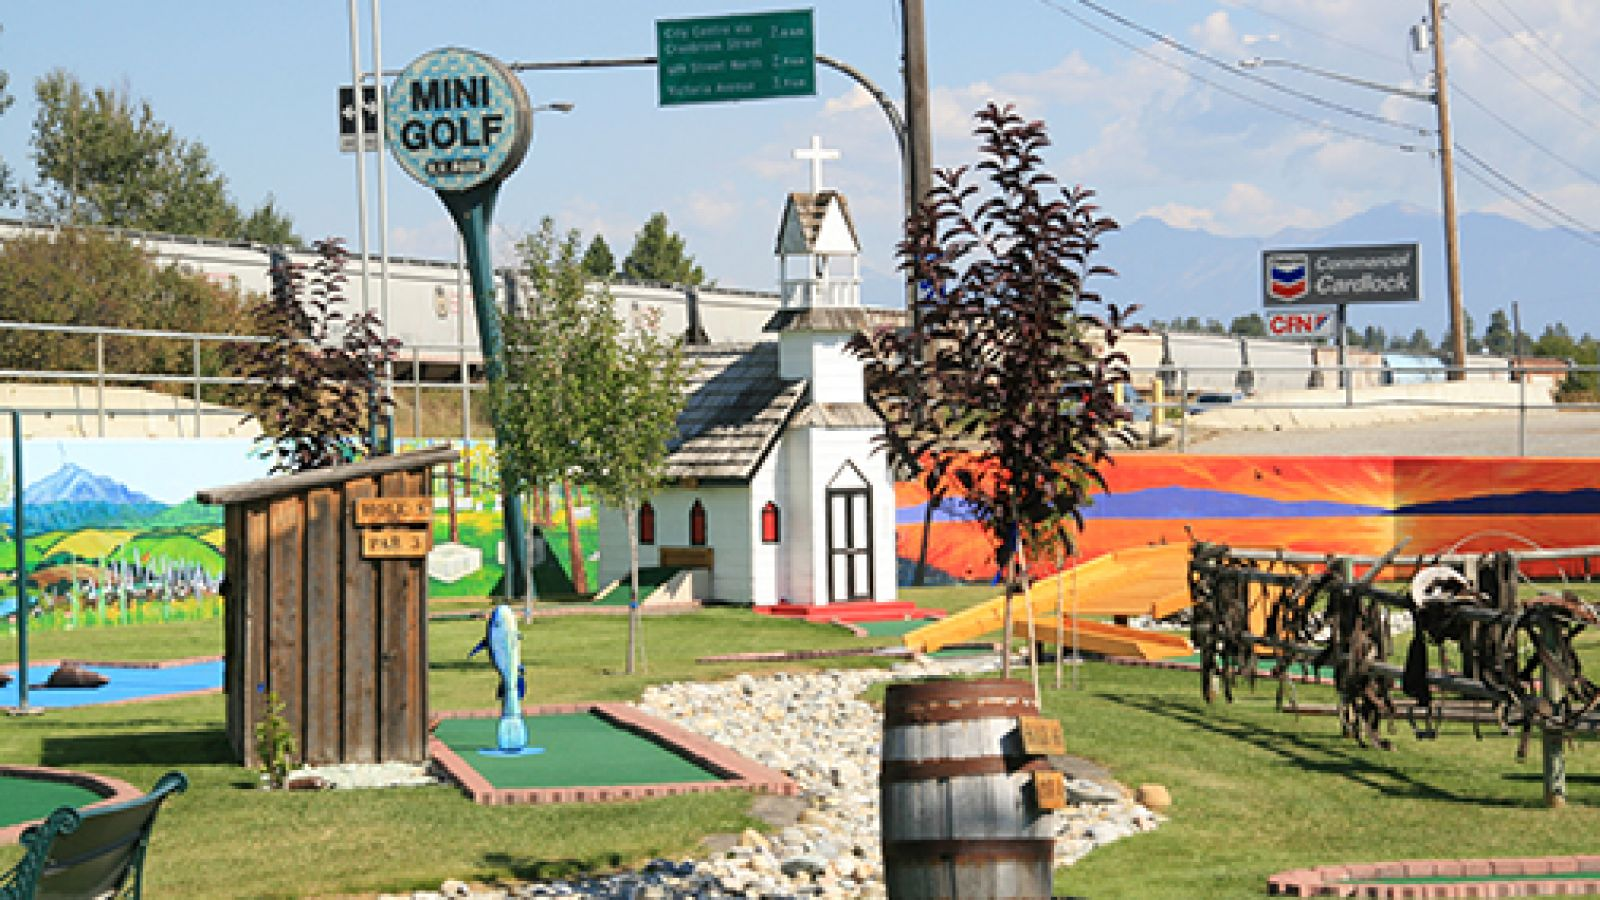 The on-site mini golf course is fun for the whole family.